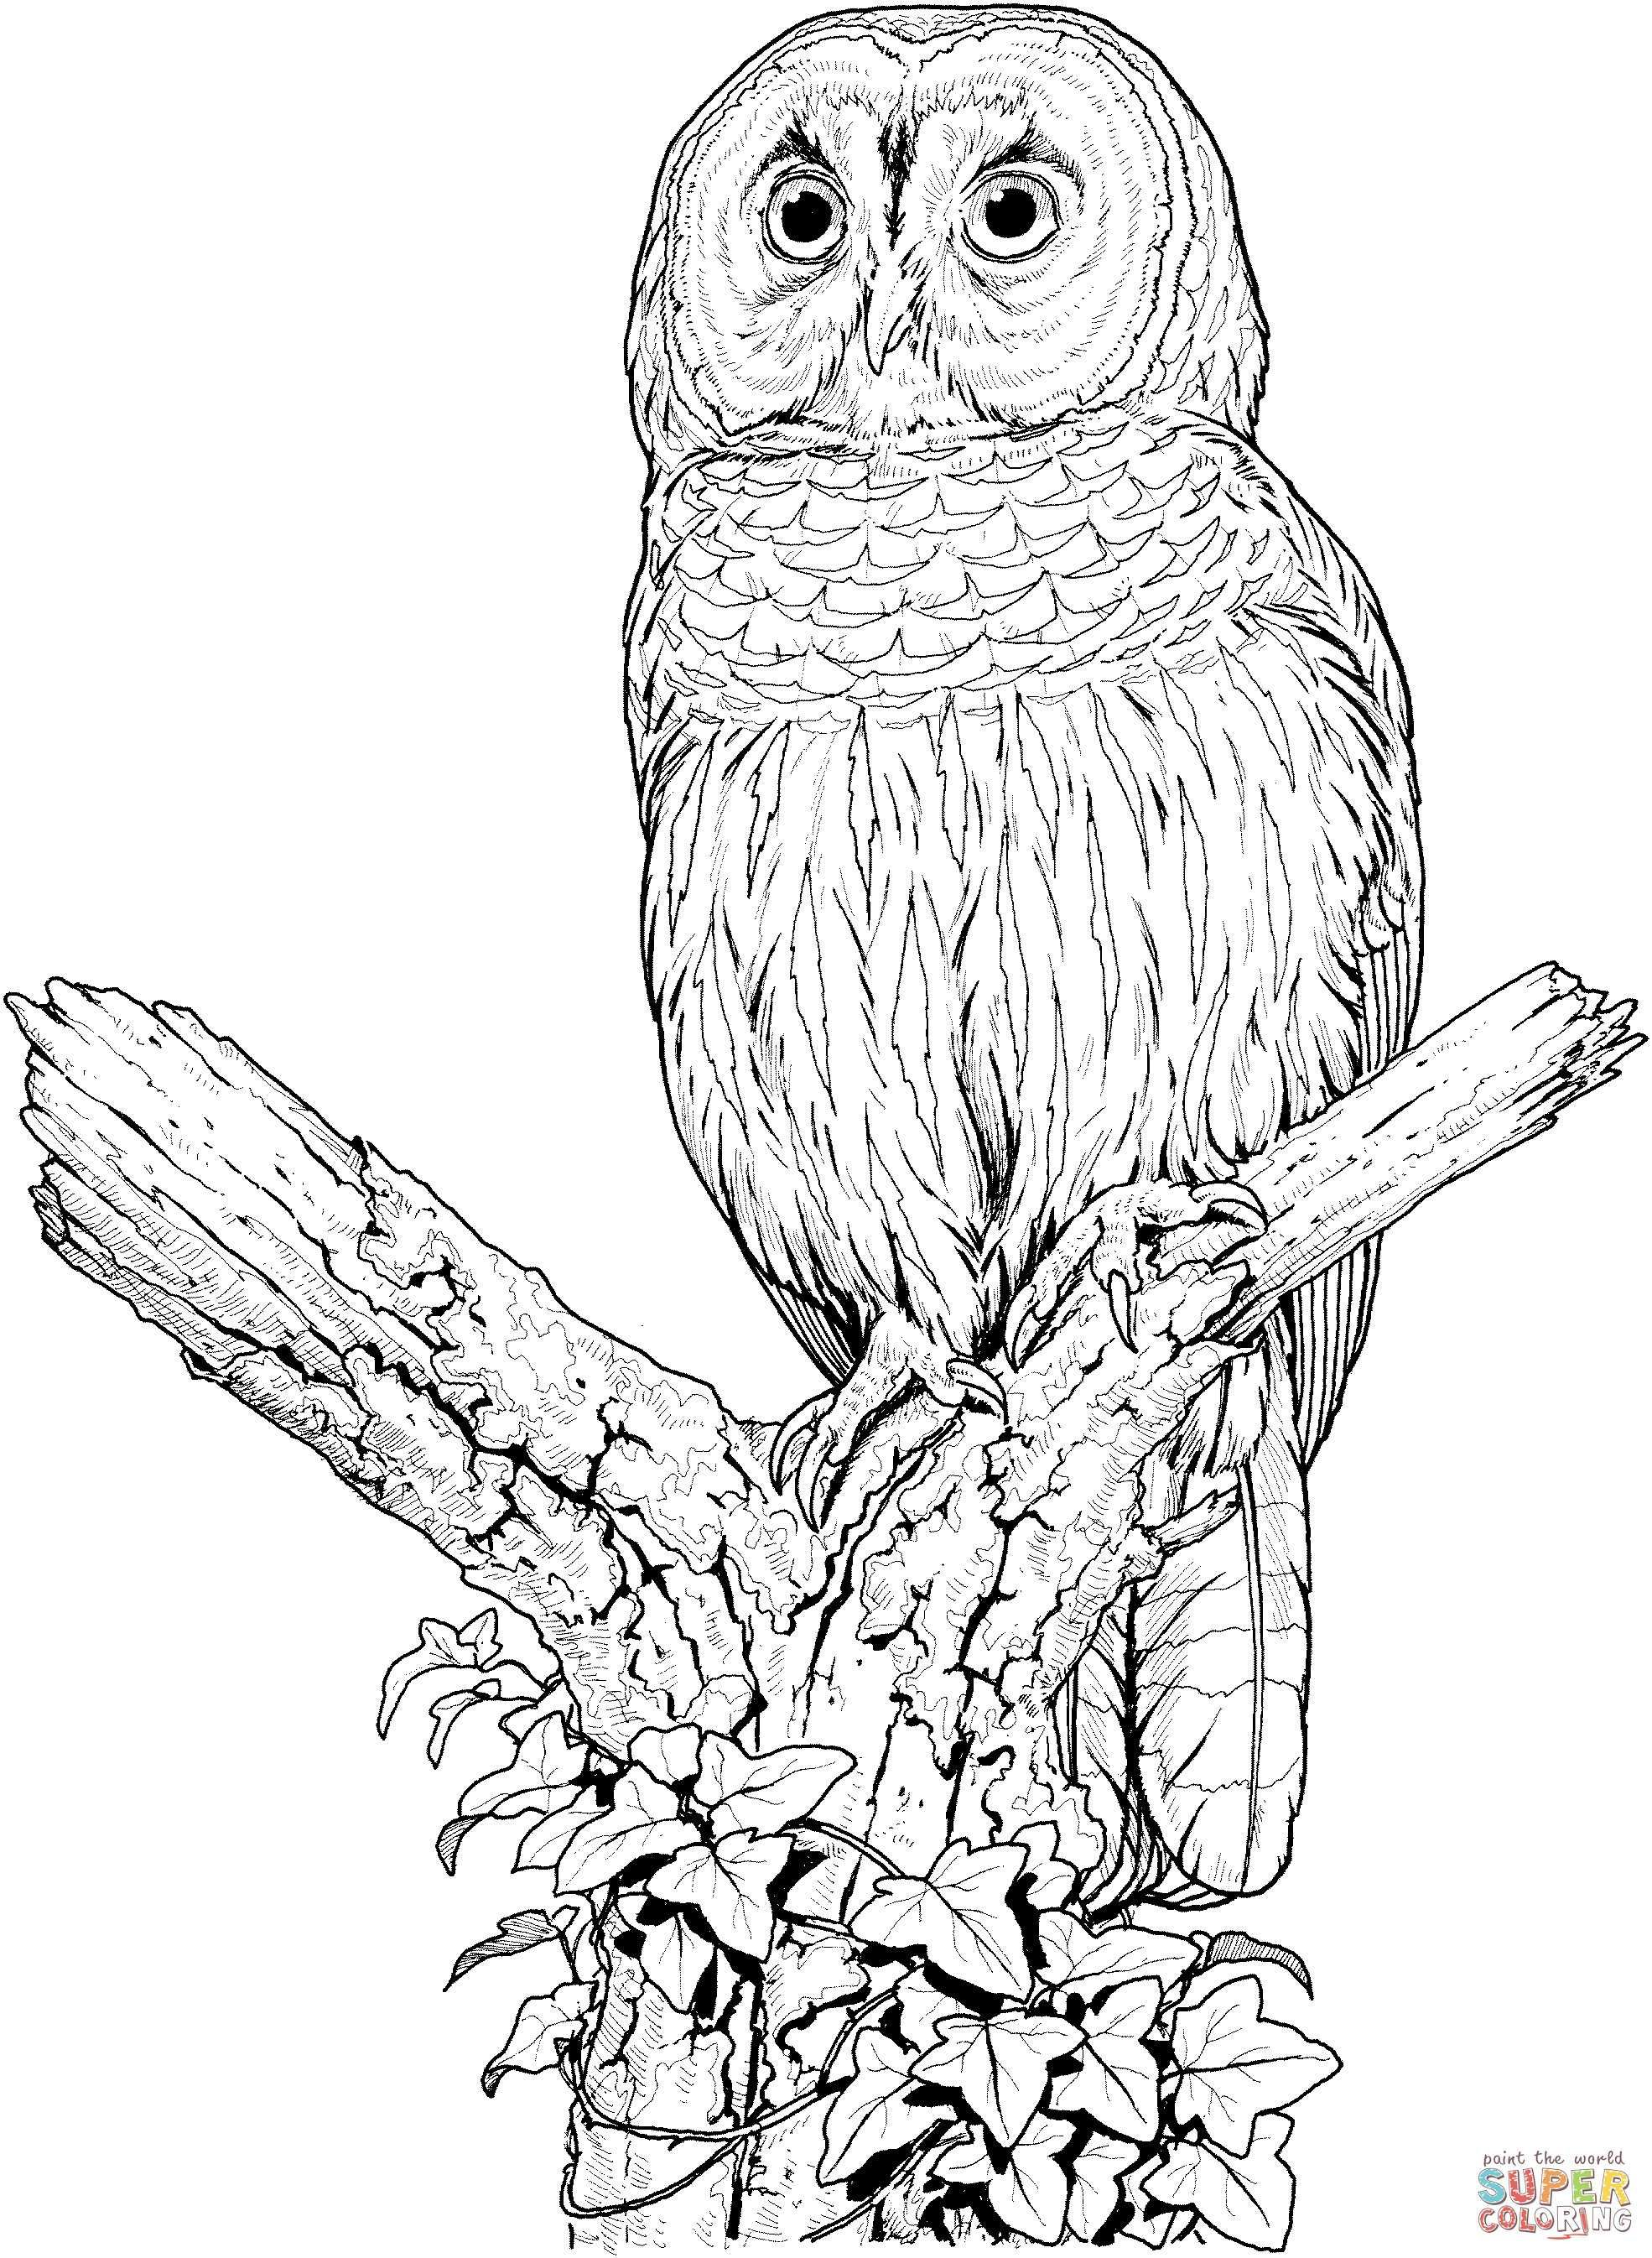 Cartoon Cute Barn Beautiful Cartoon Cute Barn Owl Coloring Sheets Inspirational Owl Coloring Owl Coloring Pages Owl Pictures To Color Animal Coloring Pages